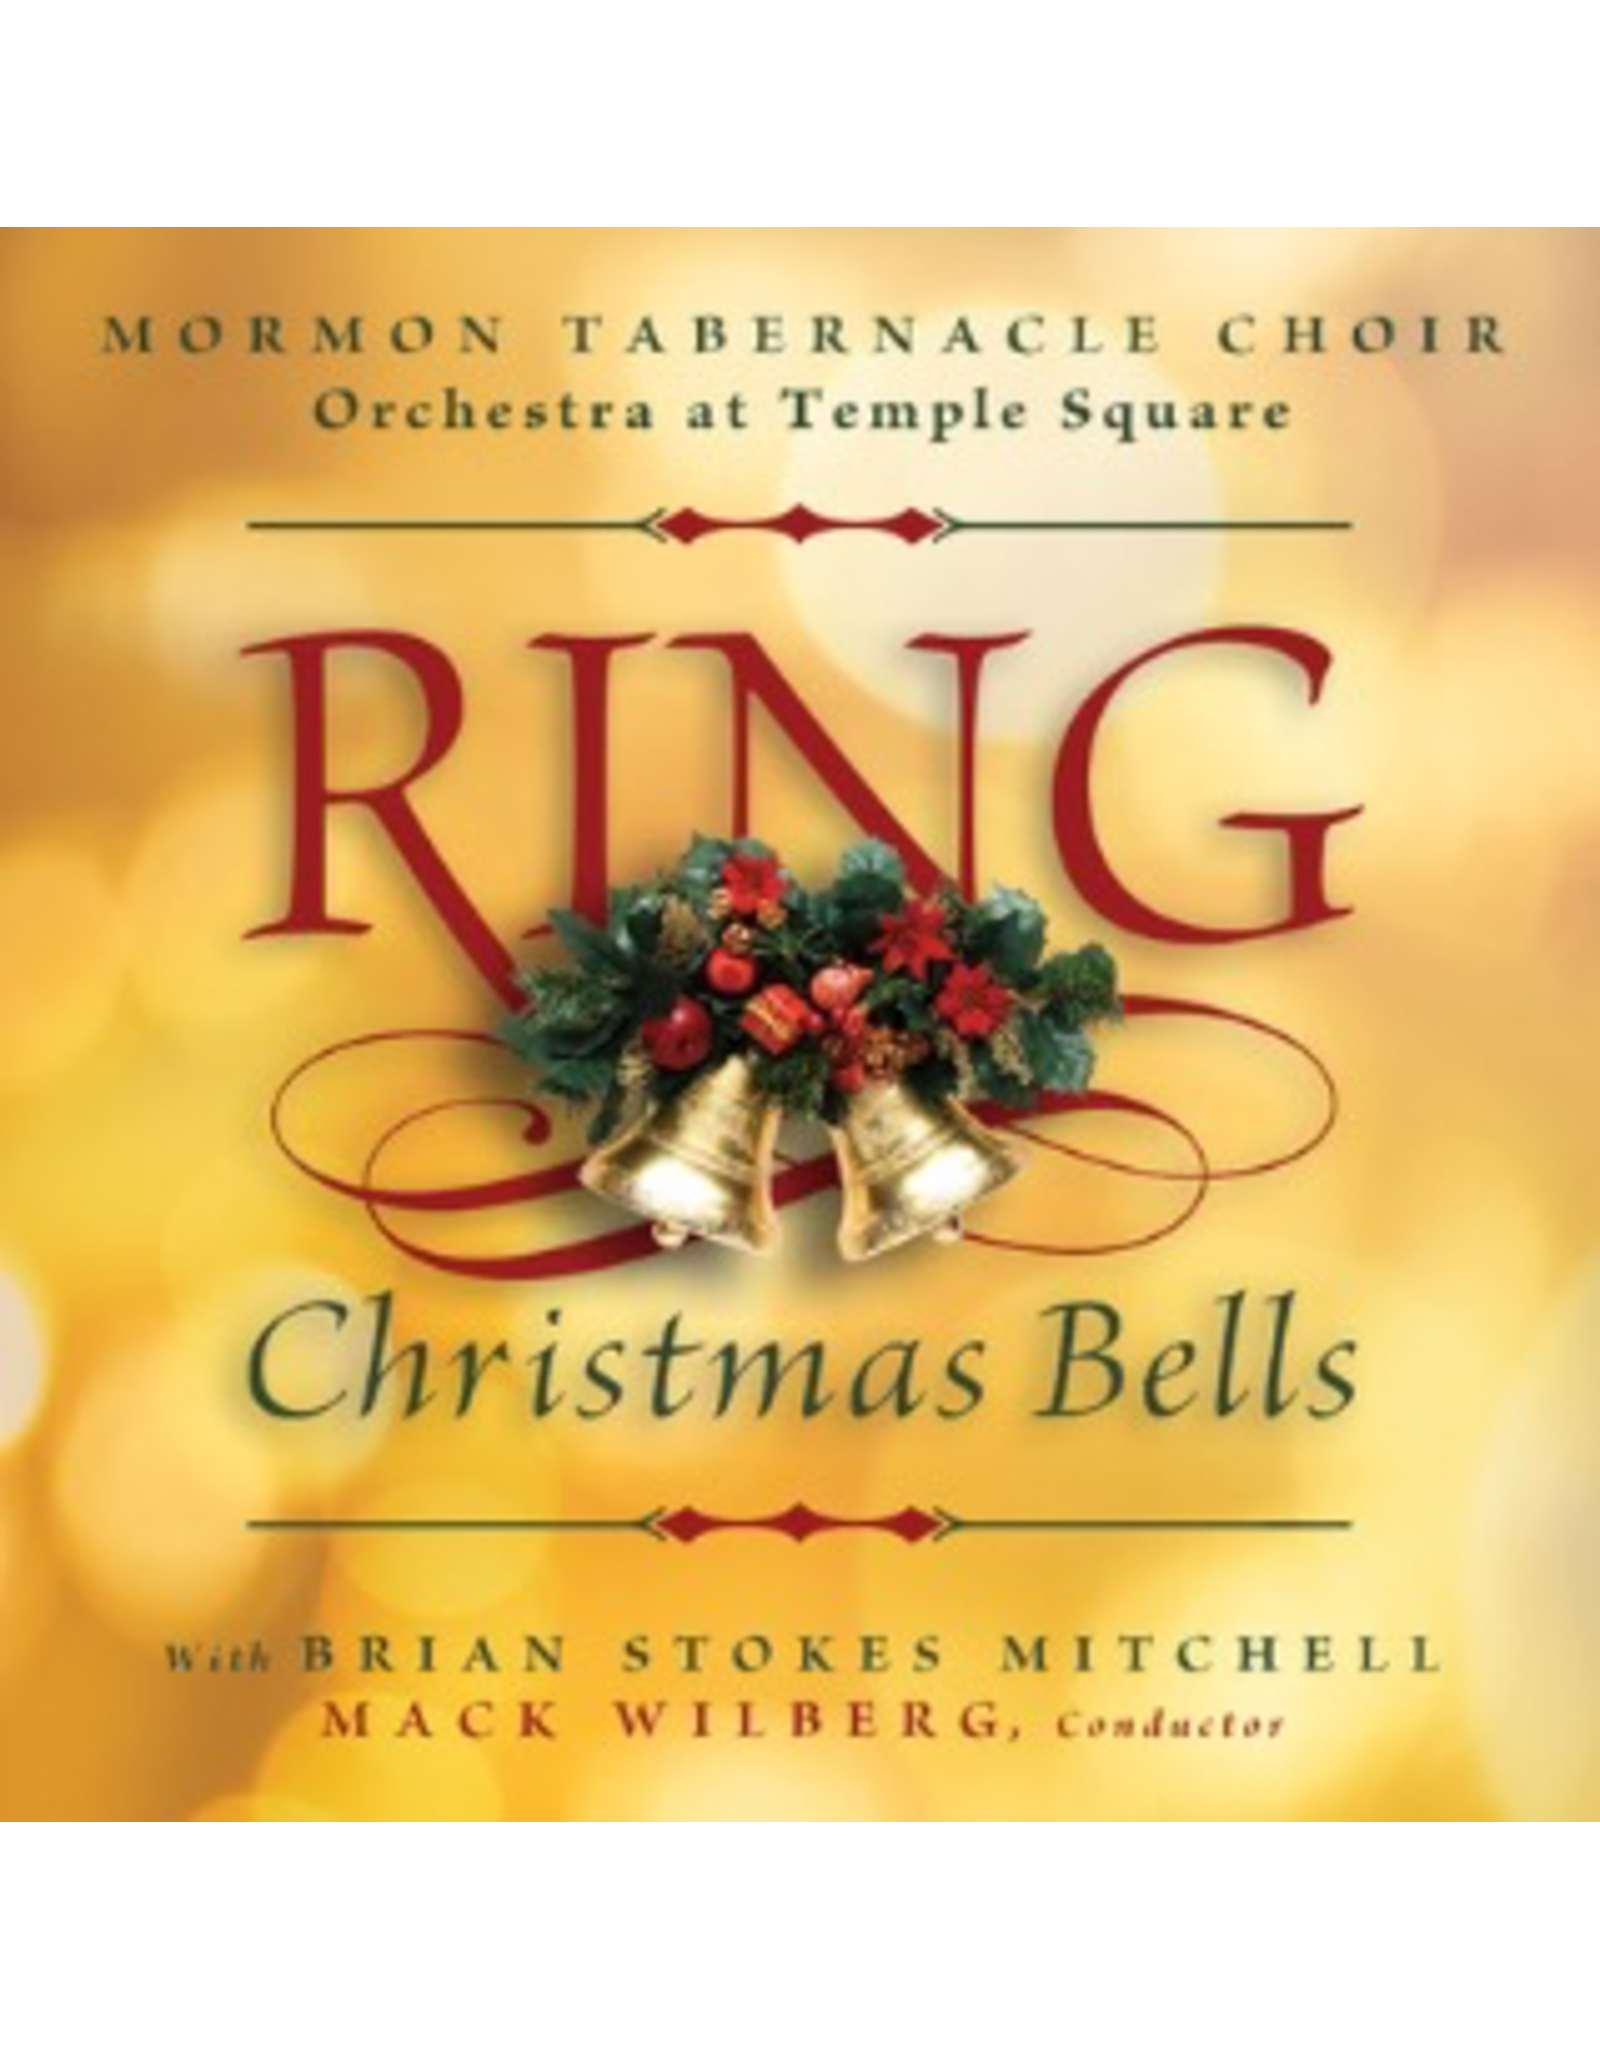 - Ring Christmas Bells - Mormon Tabernacle Choir - CD